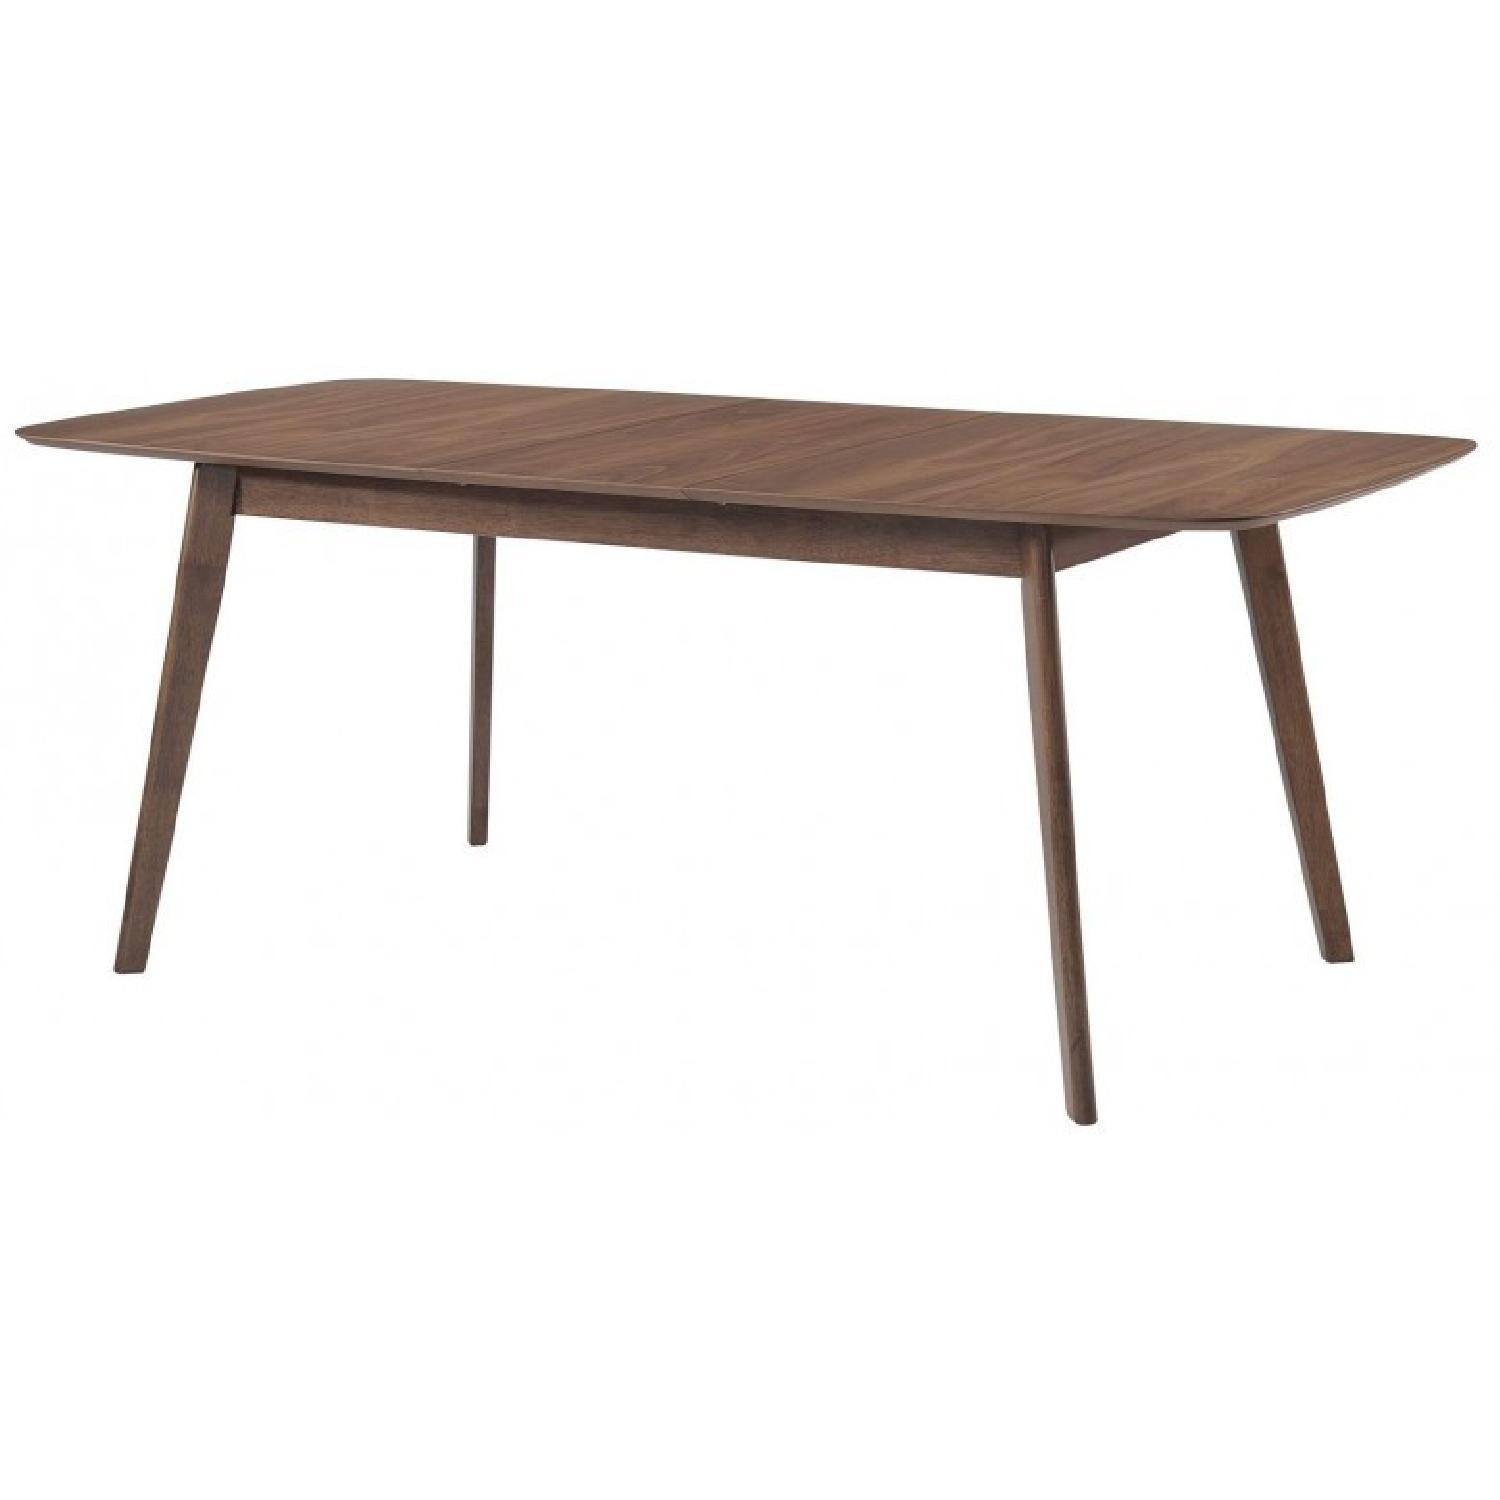 Mid Century Style Expandable Dining Table in Walnut Finish